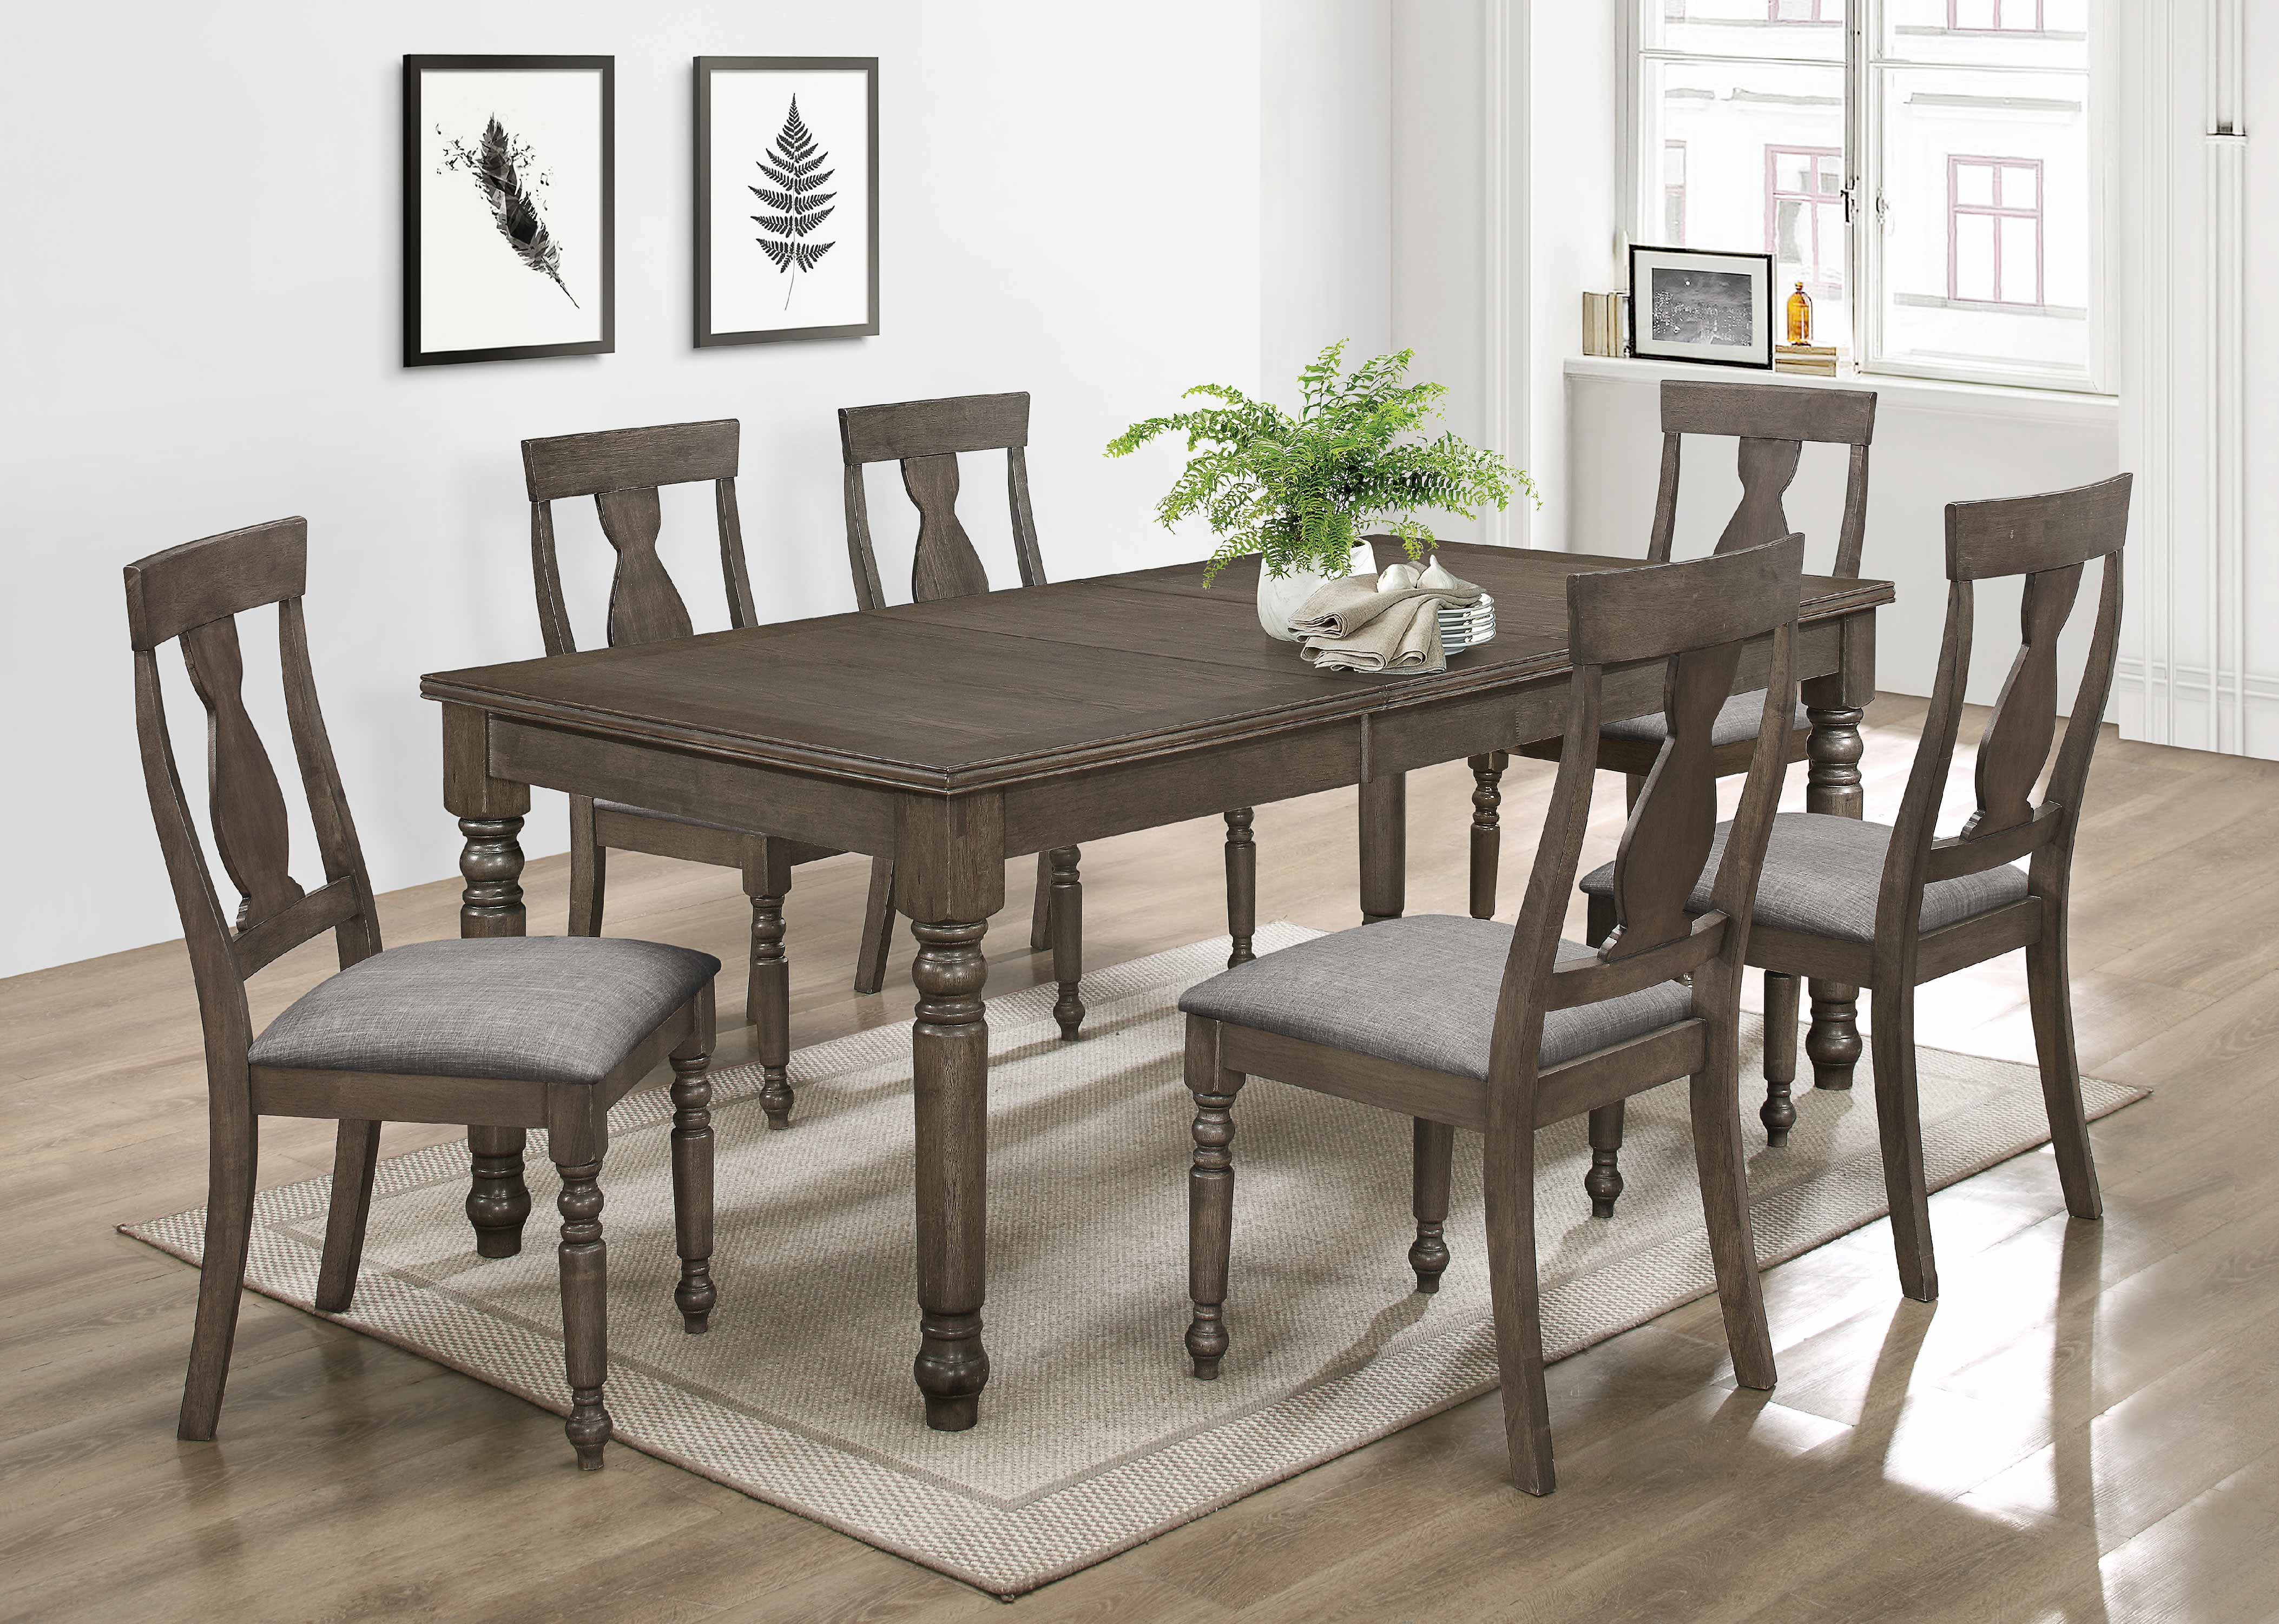 Pleasant Dining Table Milton Greens Stars Lowest Price Possible Machost Co Dining Chair Design Ideas Machostcouk